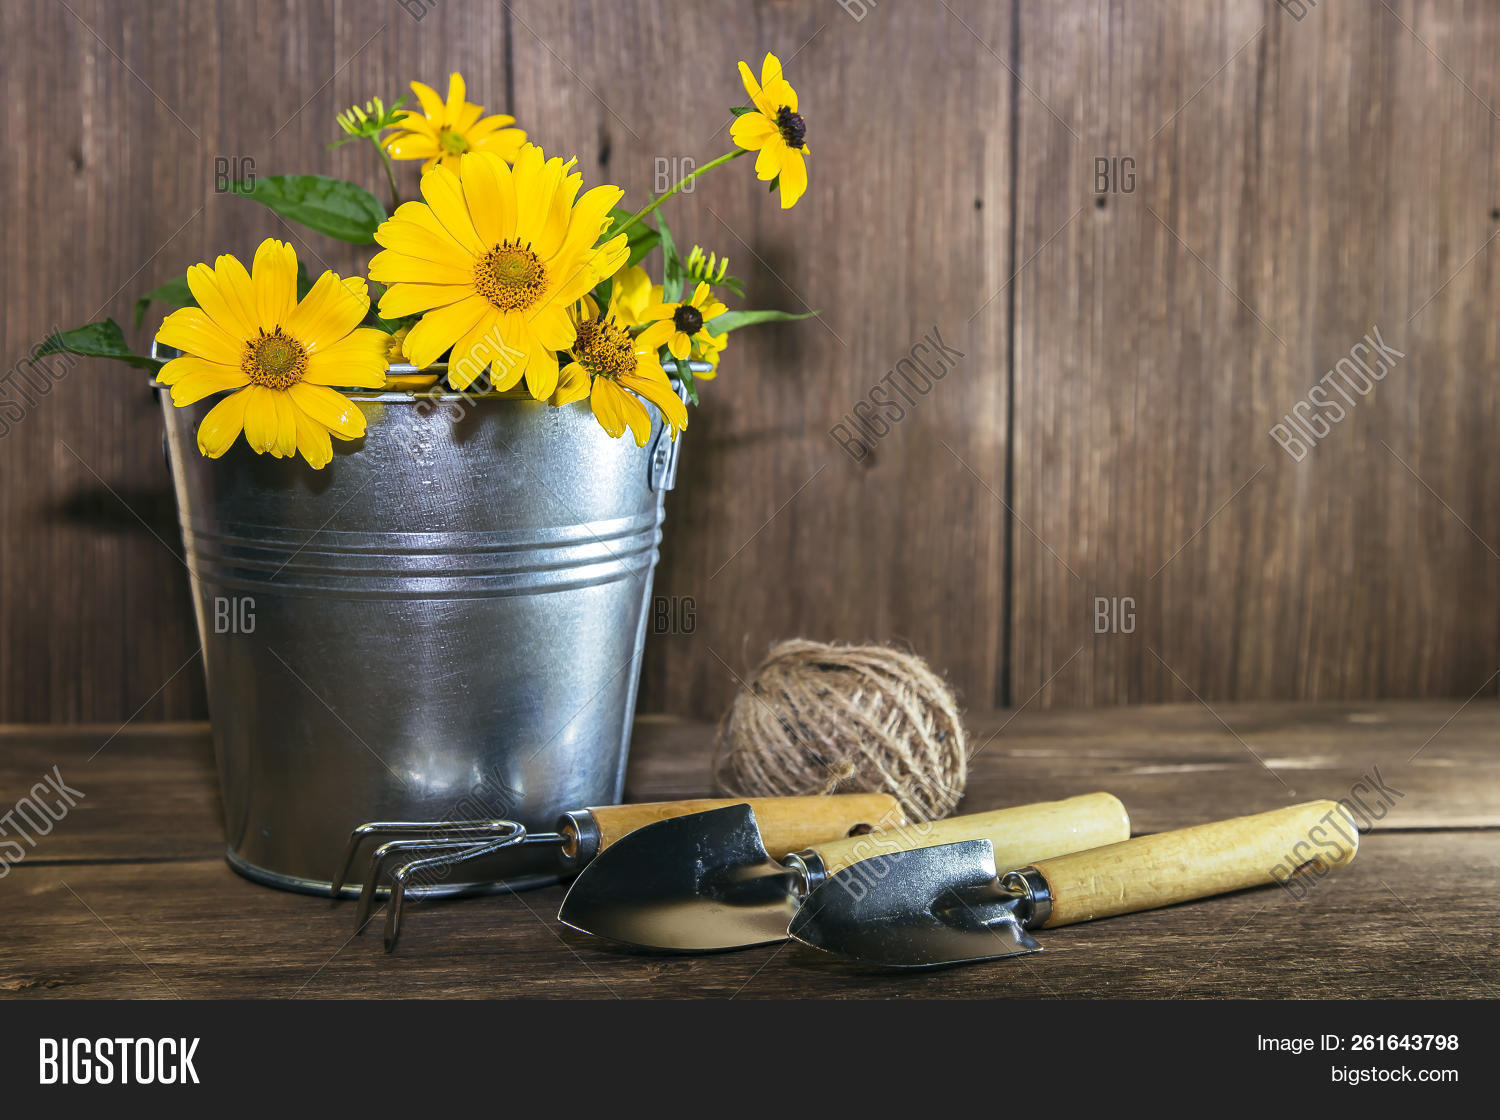 🔥 Gardening  Planting And Replanting Plants  A Bouquet Of